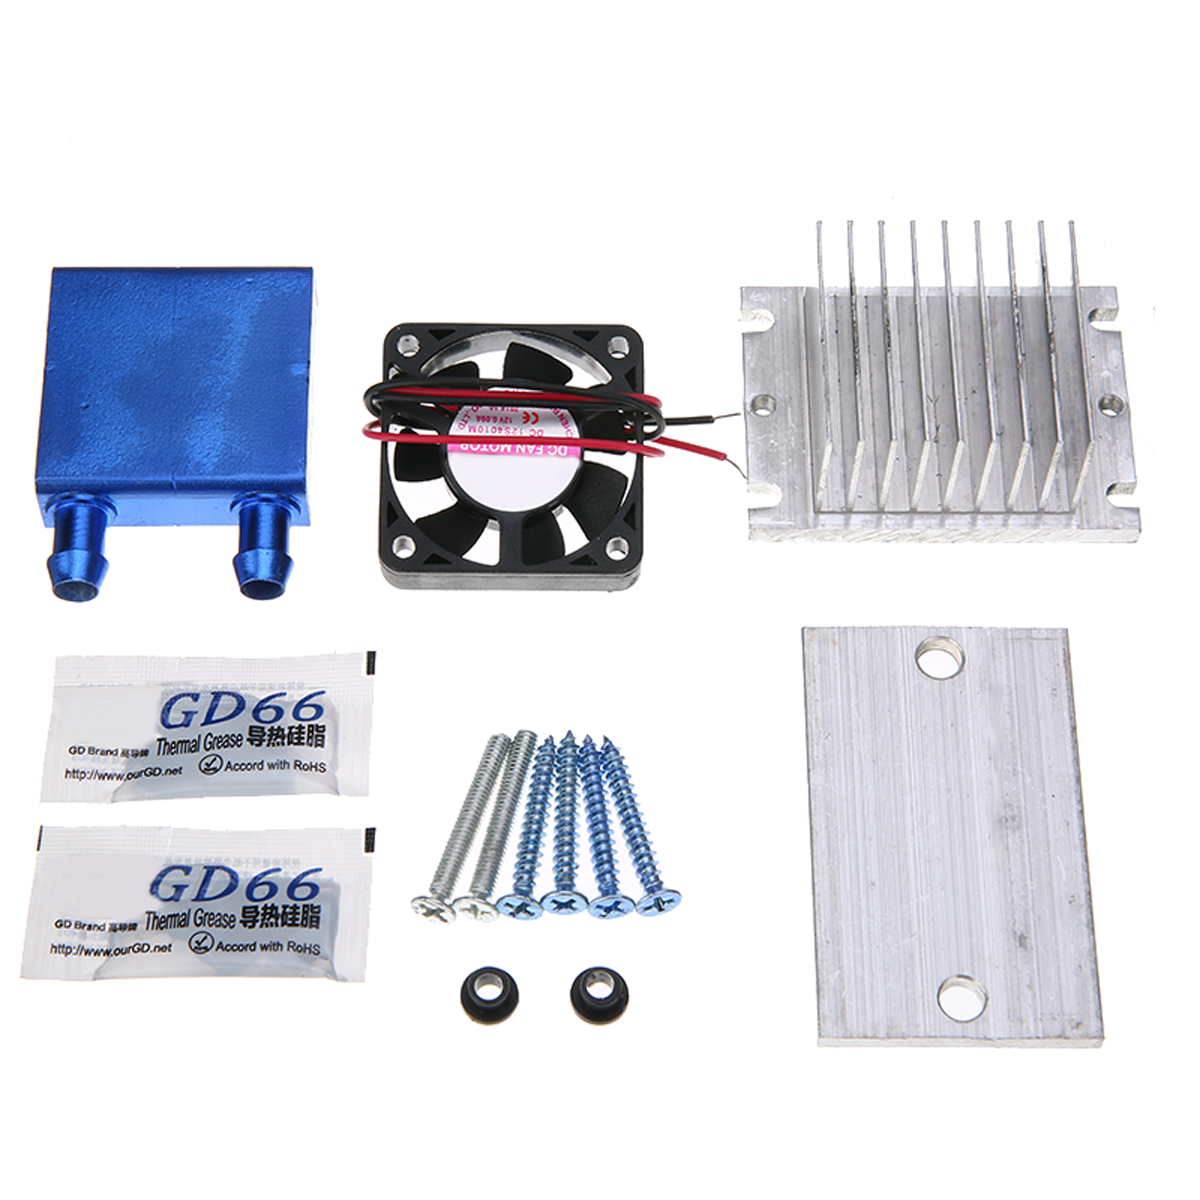 12V Practical Thermoelectric Peltier Semiconductor Cooler Refrigeration Cooling Fan System Heatsink DIY Kit12V Practical Thermoelectric Peltier Semiconductor Cooler Refrigeration Cooling Fan System Heatsink DIY Kit